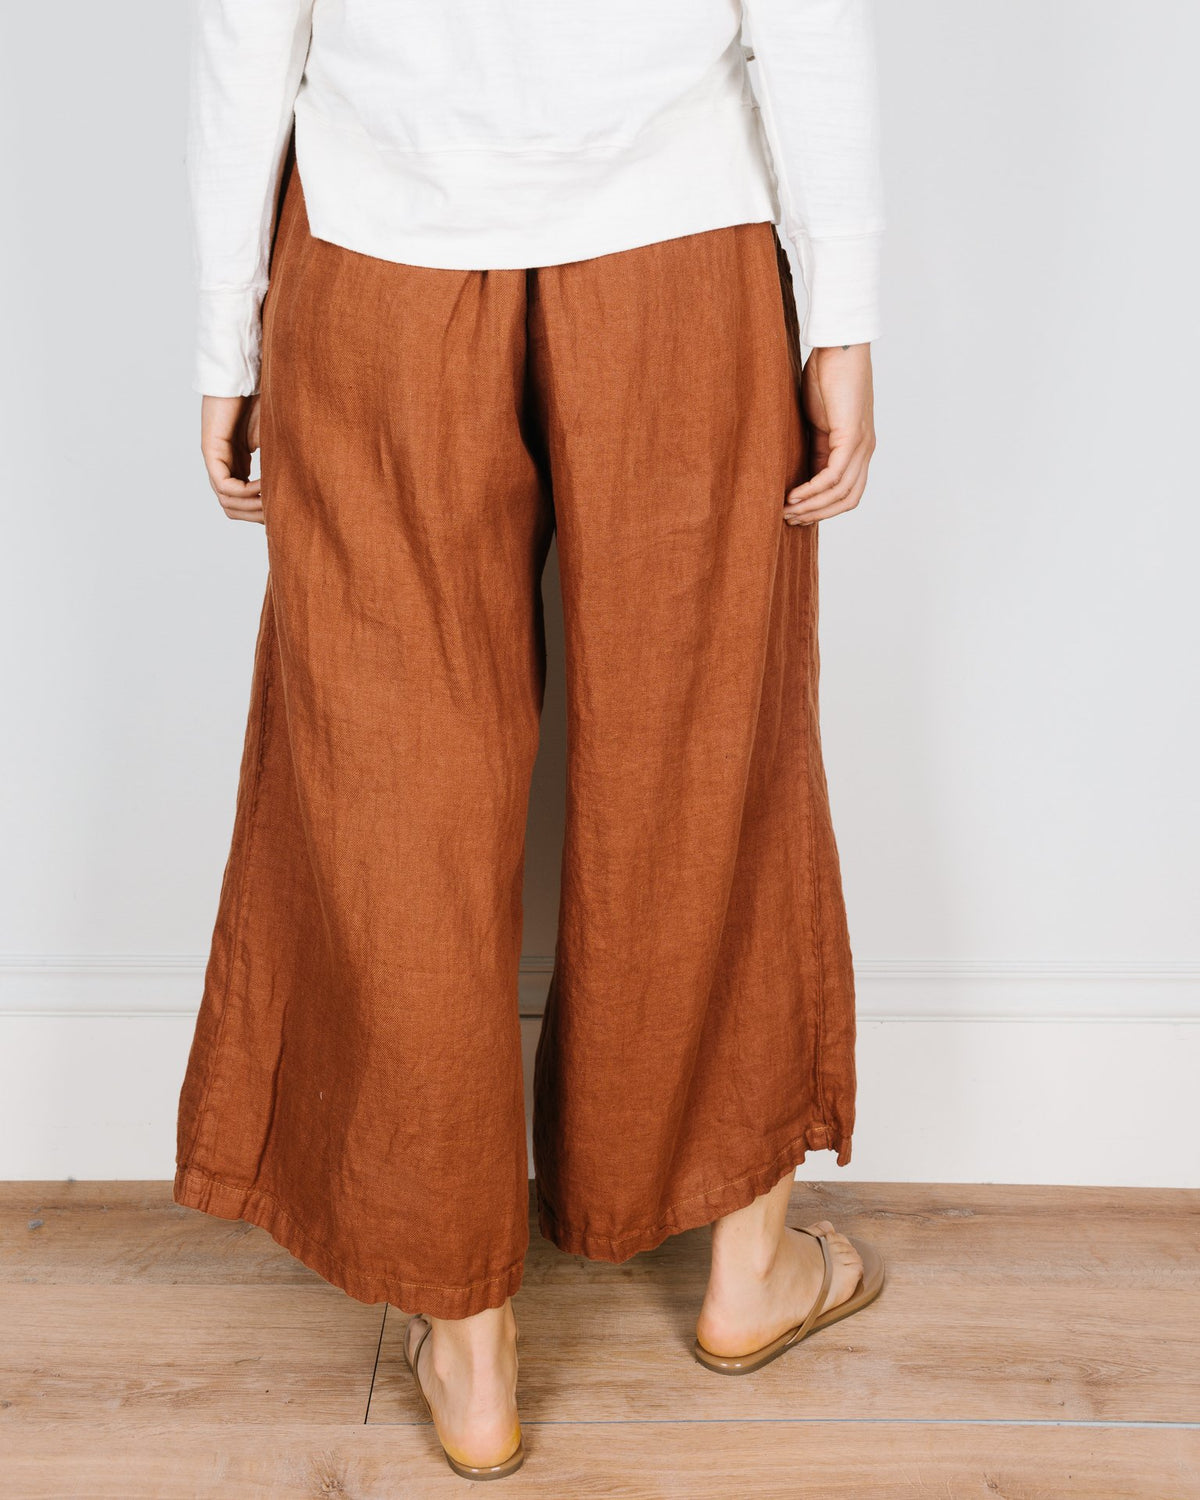 CP Shades Clothing Cropped Wendy Pant in Pluot